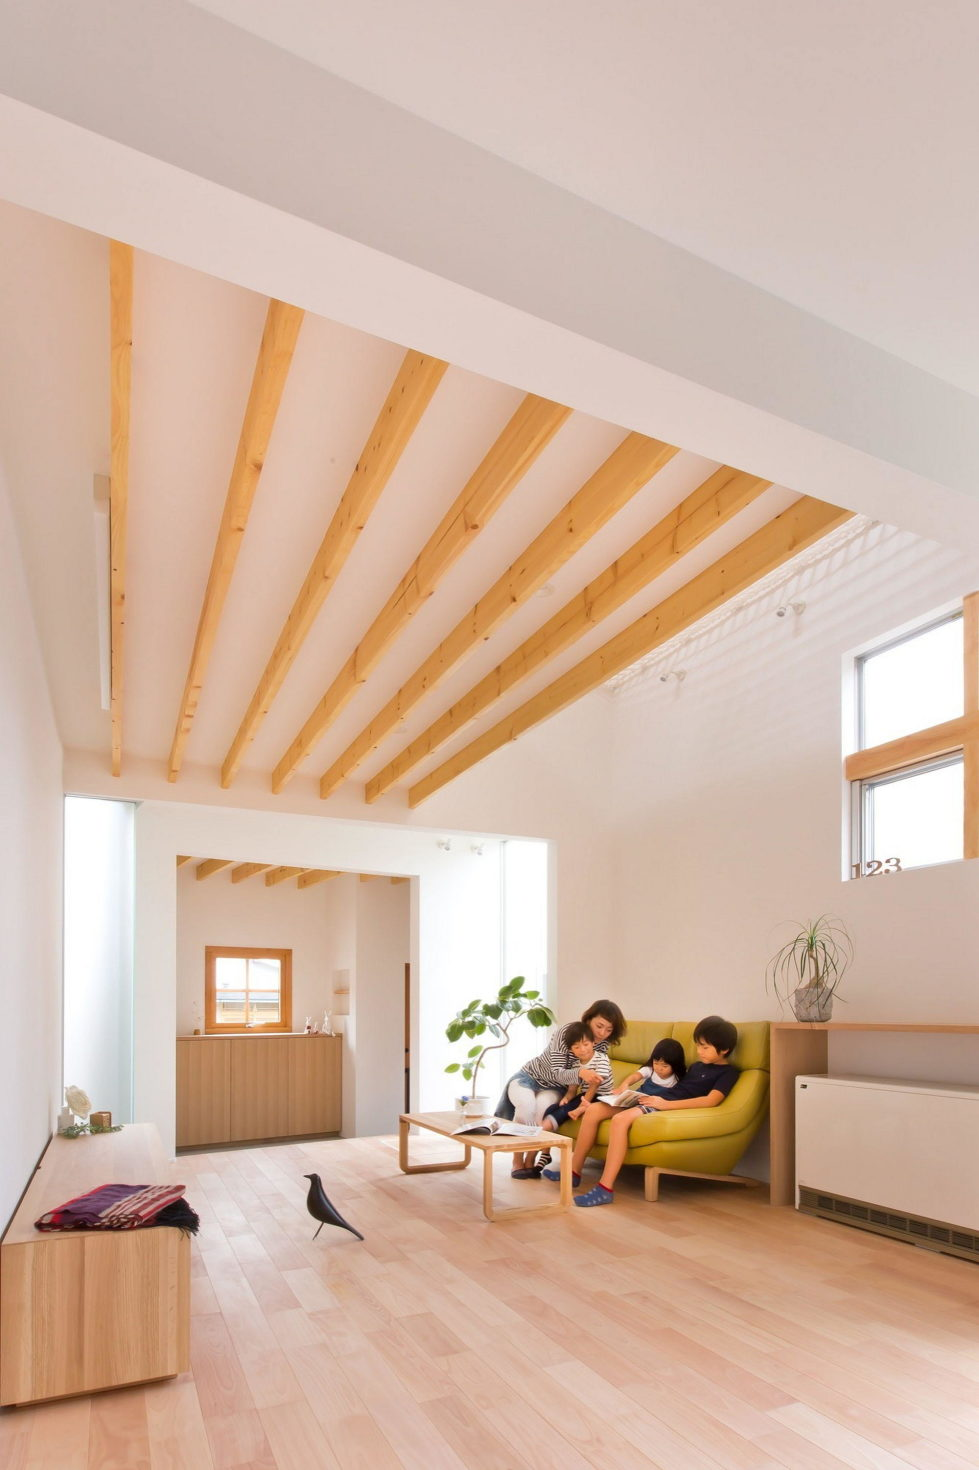 The House In Nipponese Minimalism In Kyoto By ALTS Design Office 1